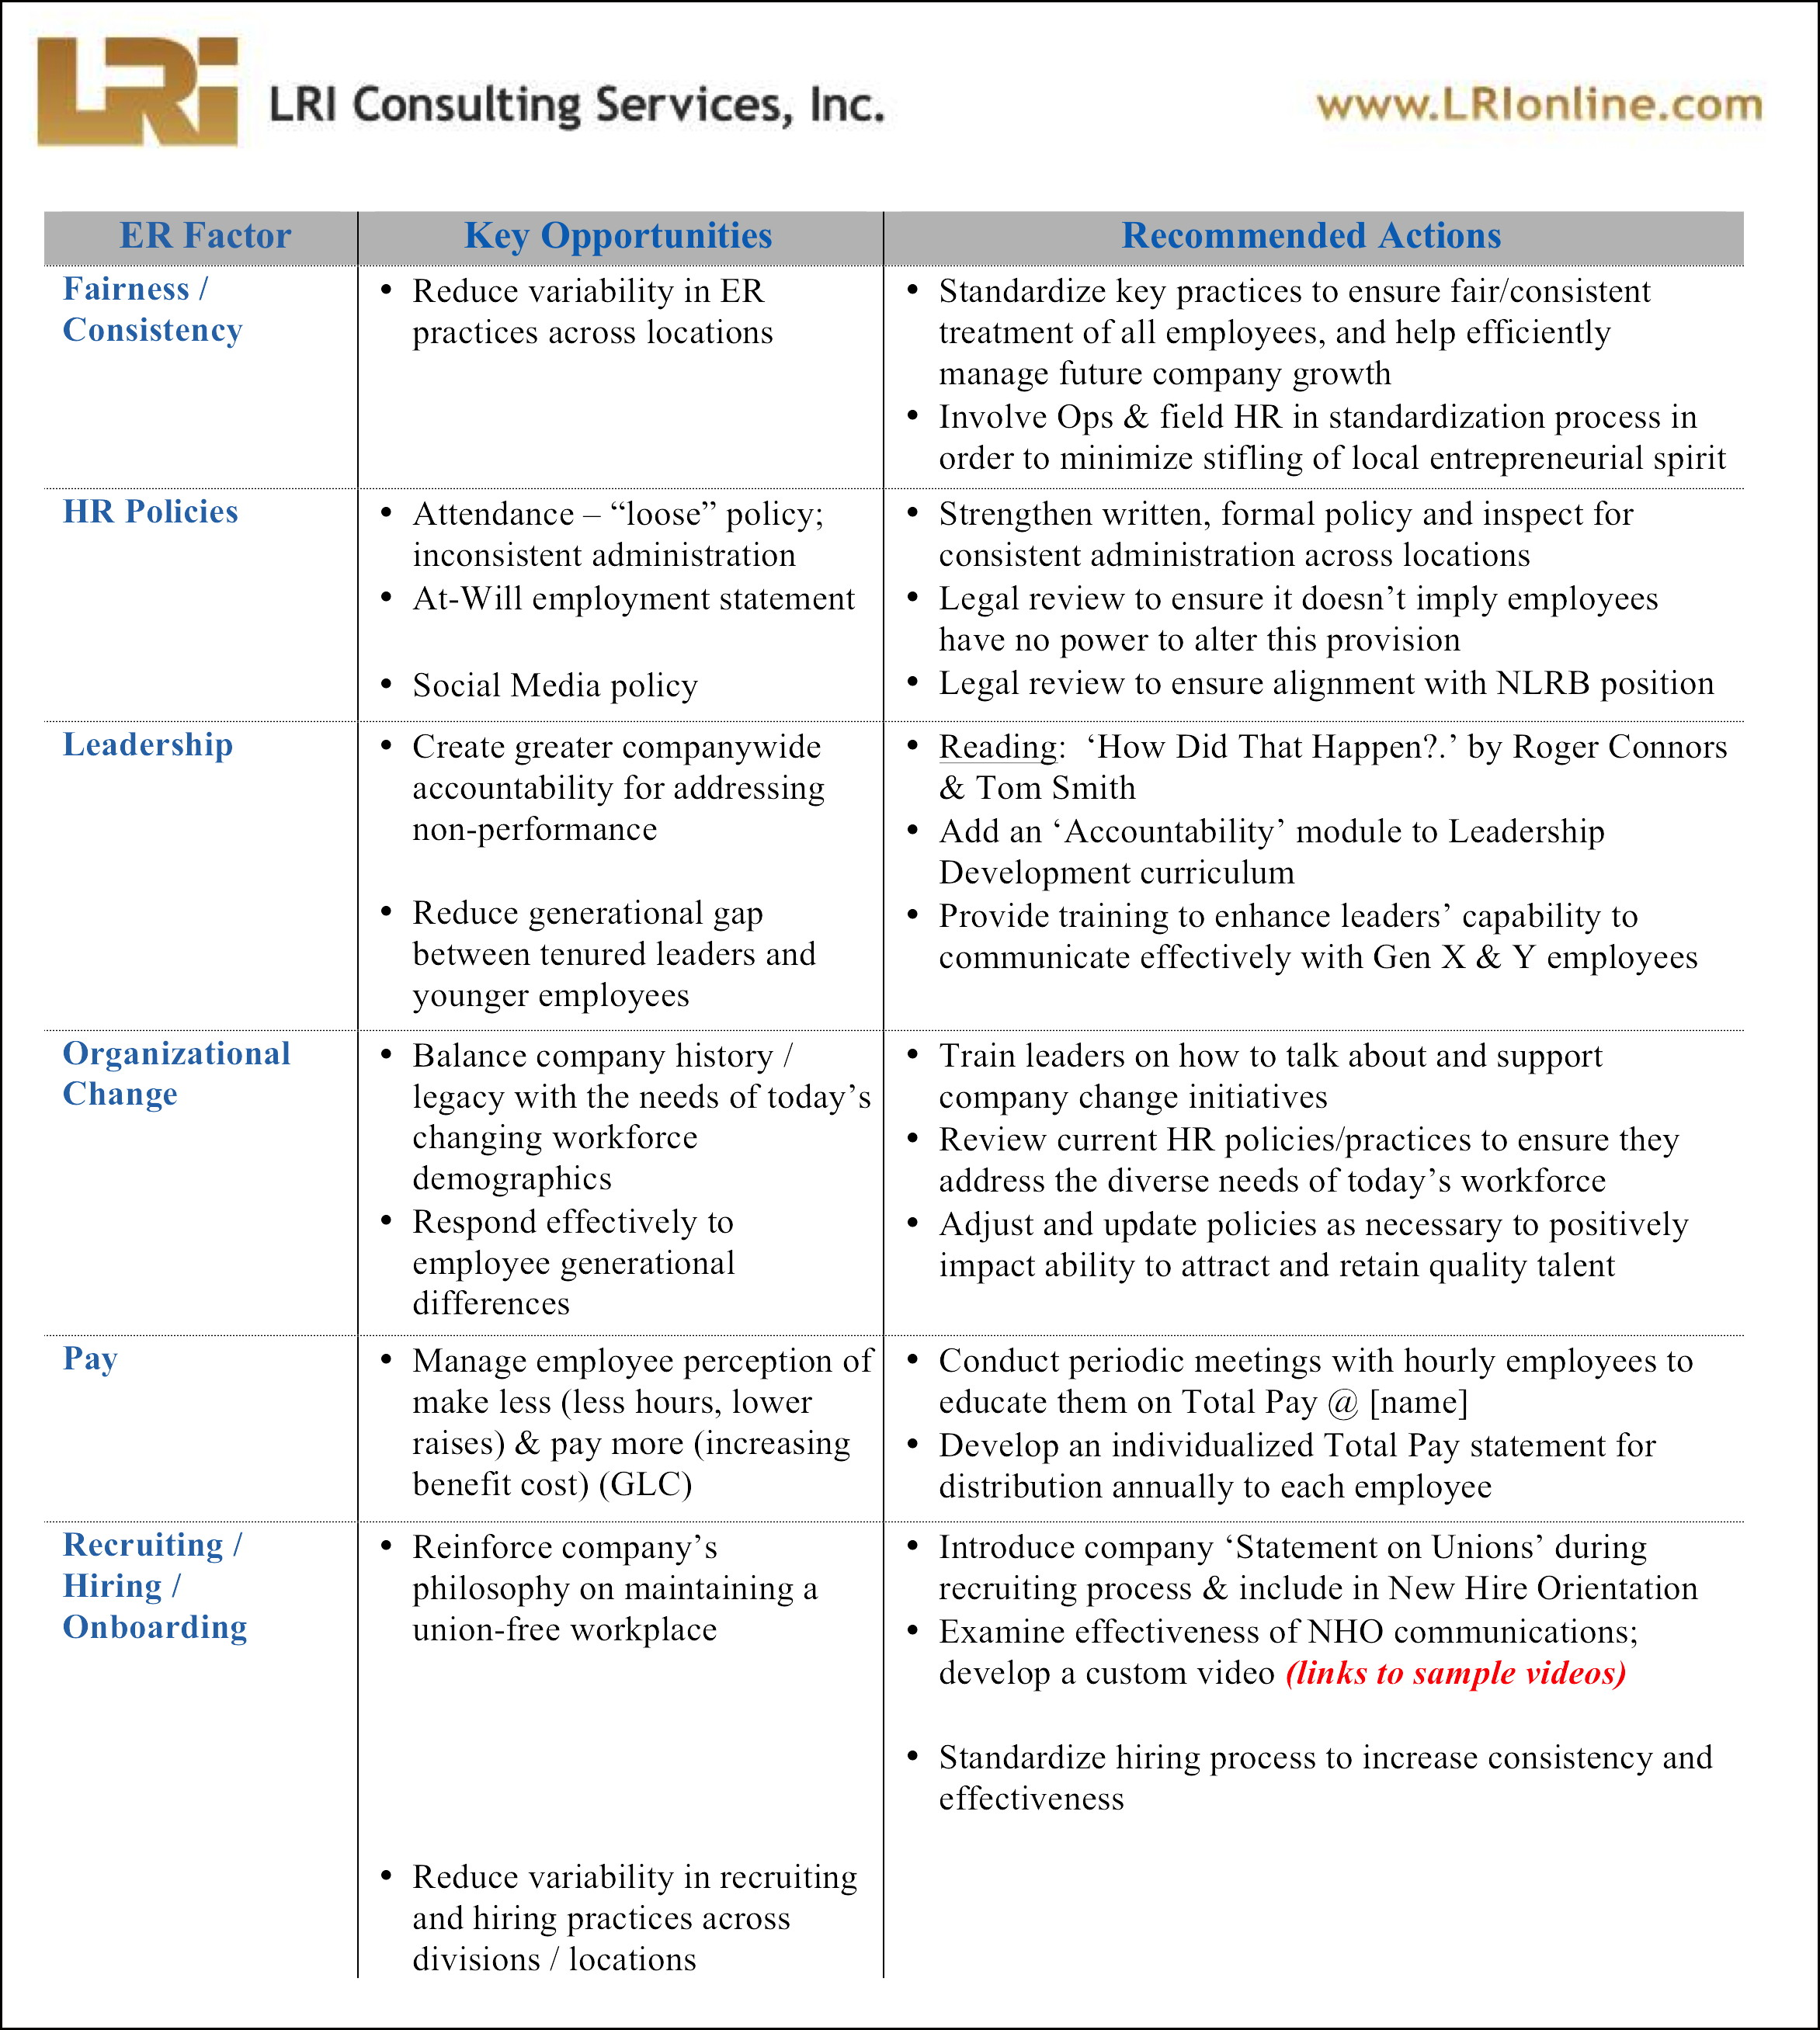 opportunity assessment report this document contains excerpts from